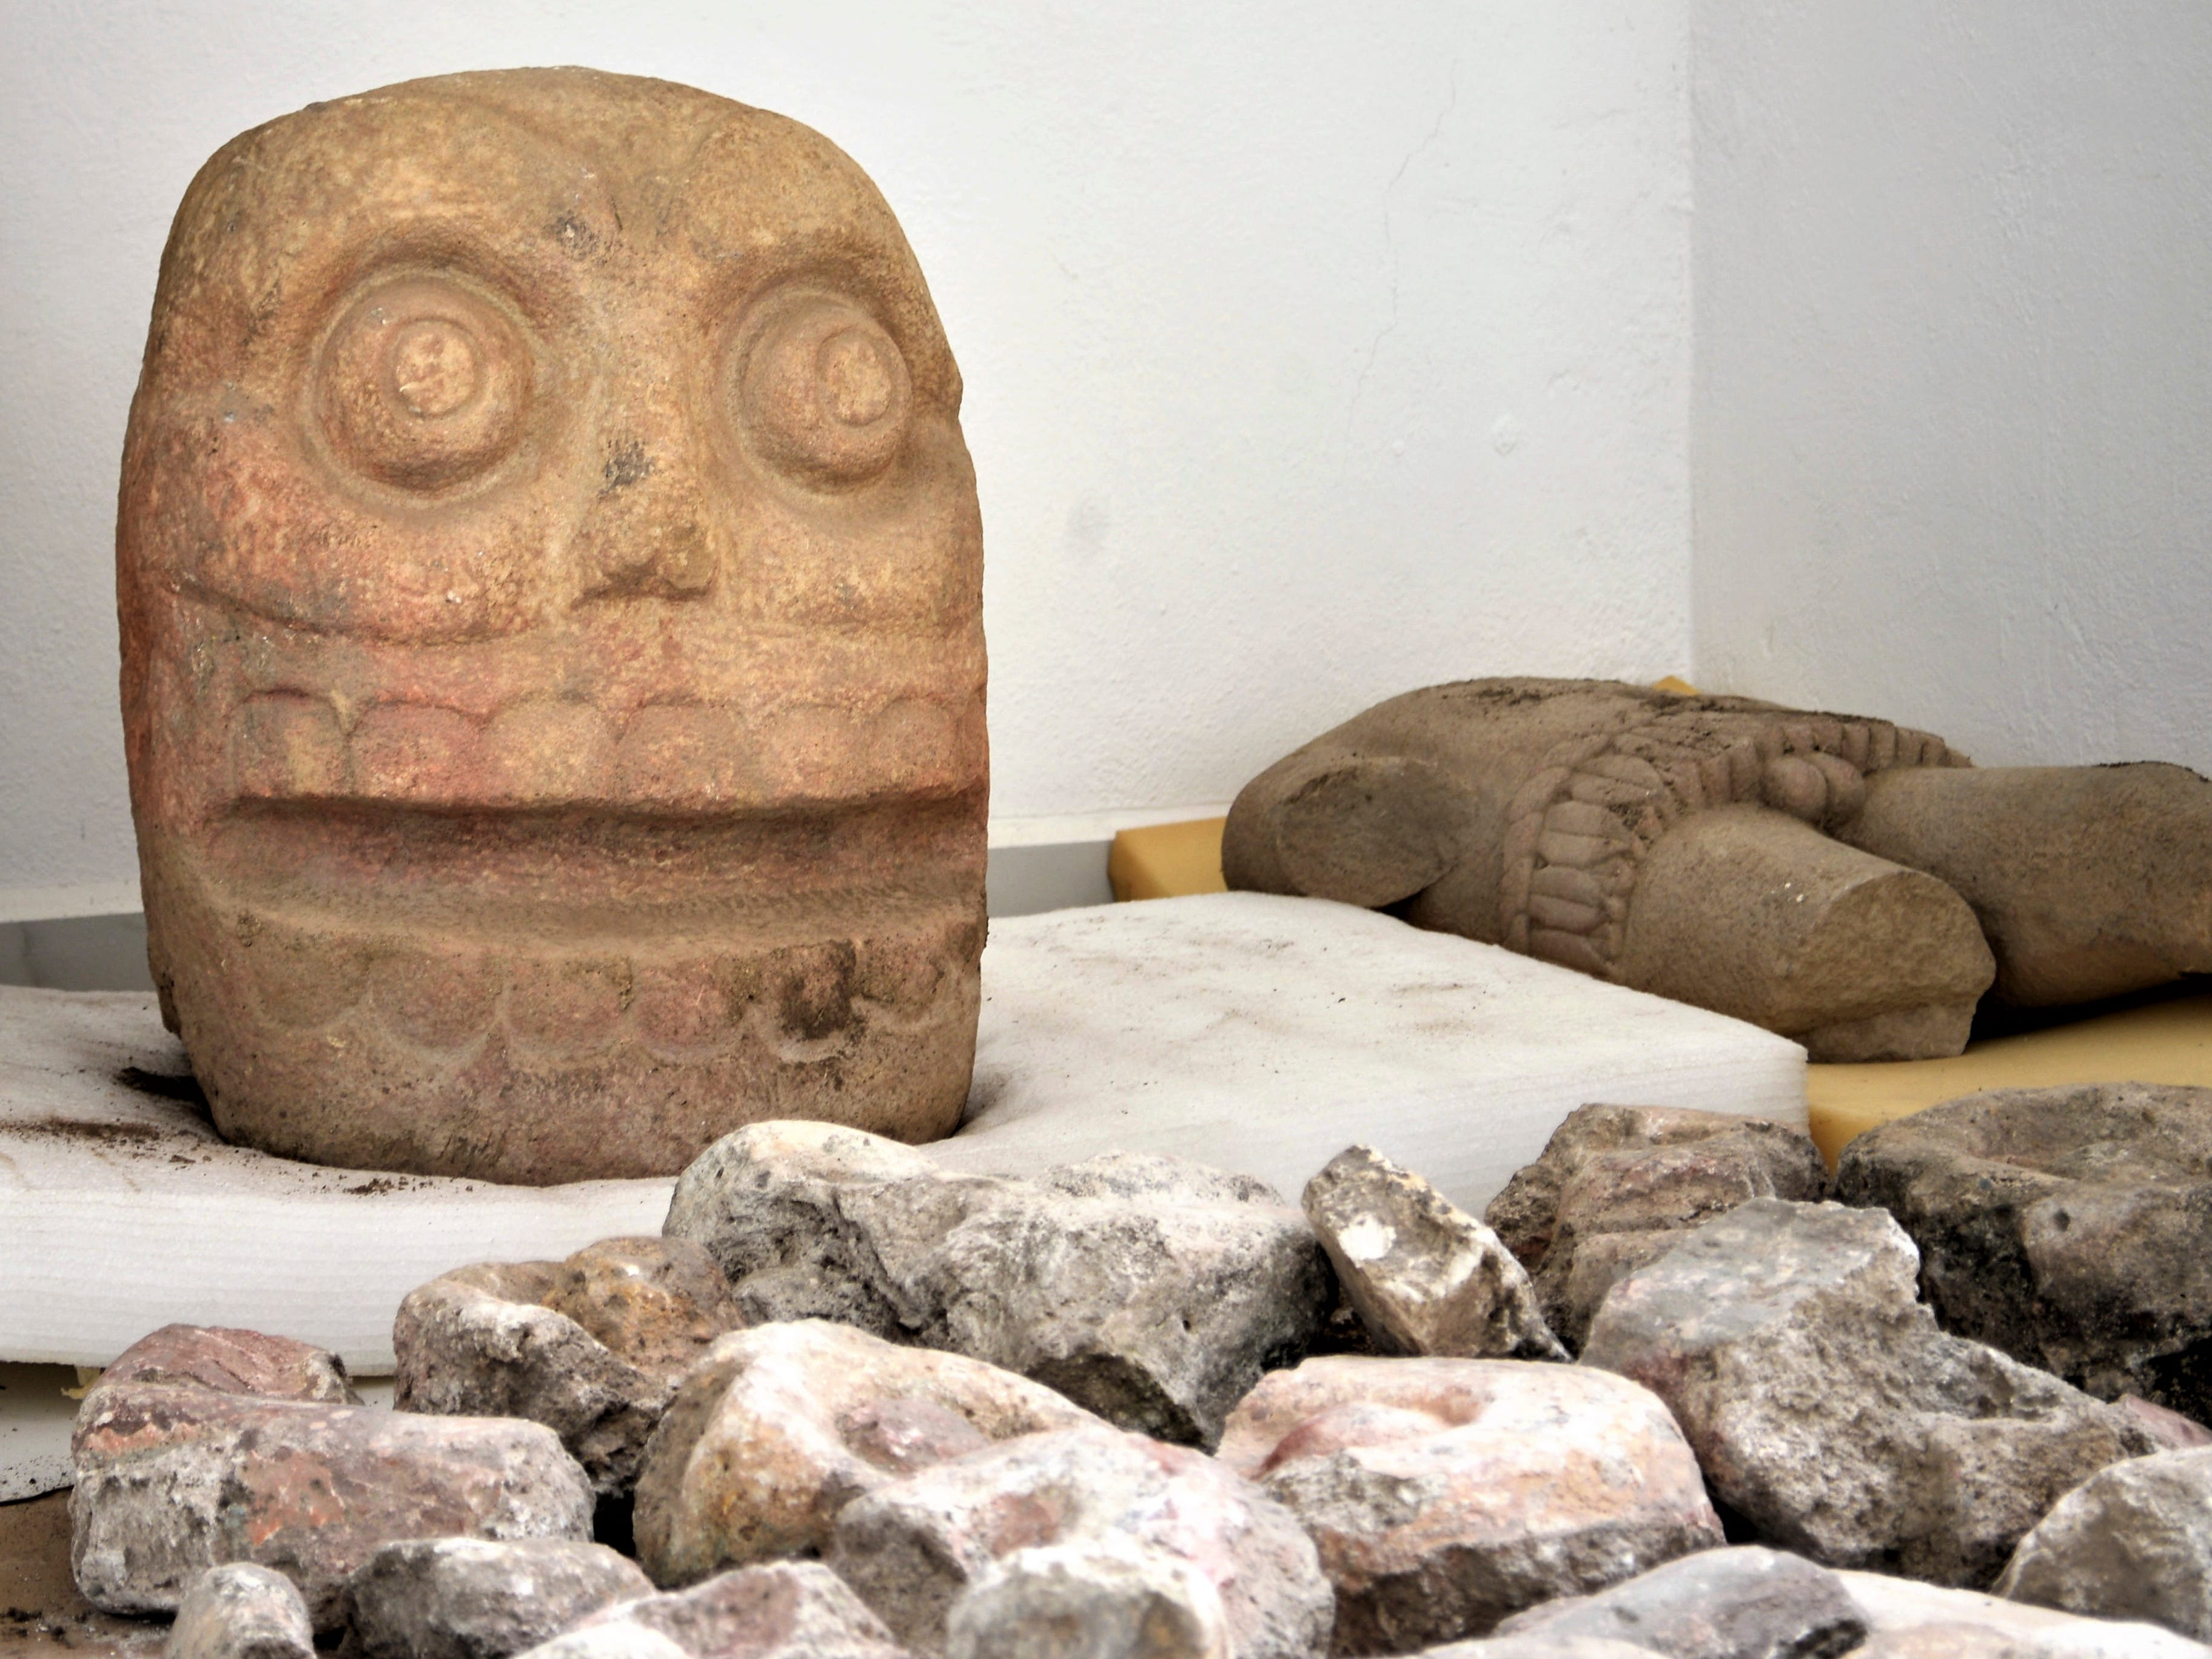 In this 2018 photo provided by Mexico's National Institute of Anthropology and History, INAH, a skull-like stone carving and a stone trunk depicting the Flayed Lord, a pre-Hispanic fertility god depicted as a skinned human corpse, are stored after being excavated from the Ndachjian–Tehuacan archaeological site in Tehuacan, Puebla state, where archaeologists have discovered the first temple dedicated to the deity. Although depictions of the god, Xipe Totec, had been found before in other cultures, a whole temple had never been discovered.